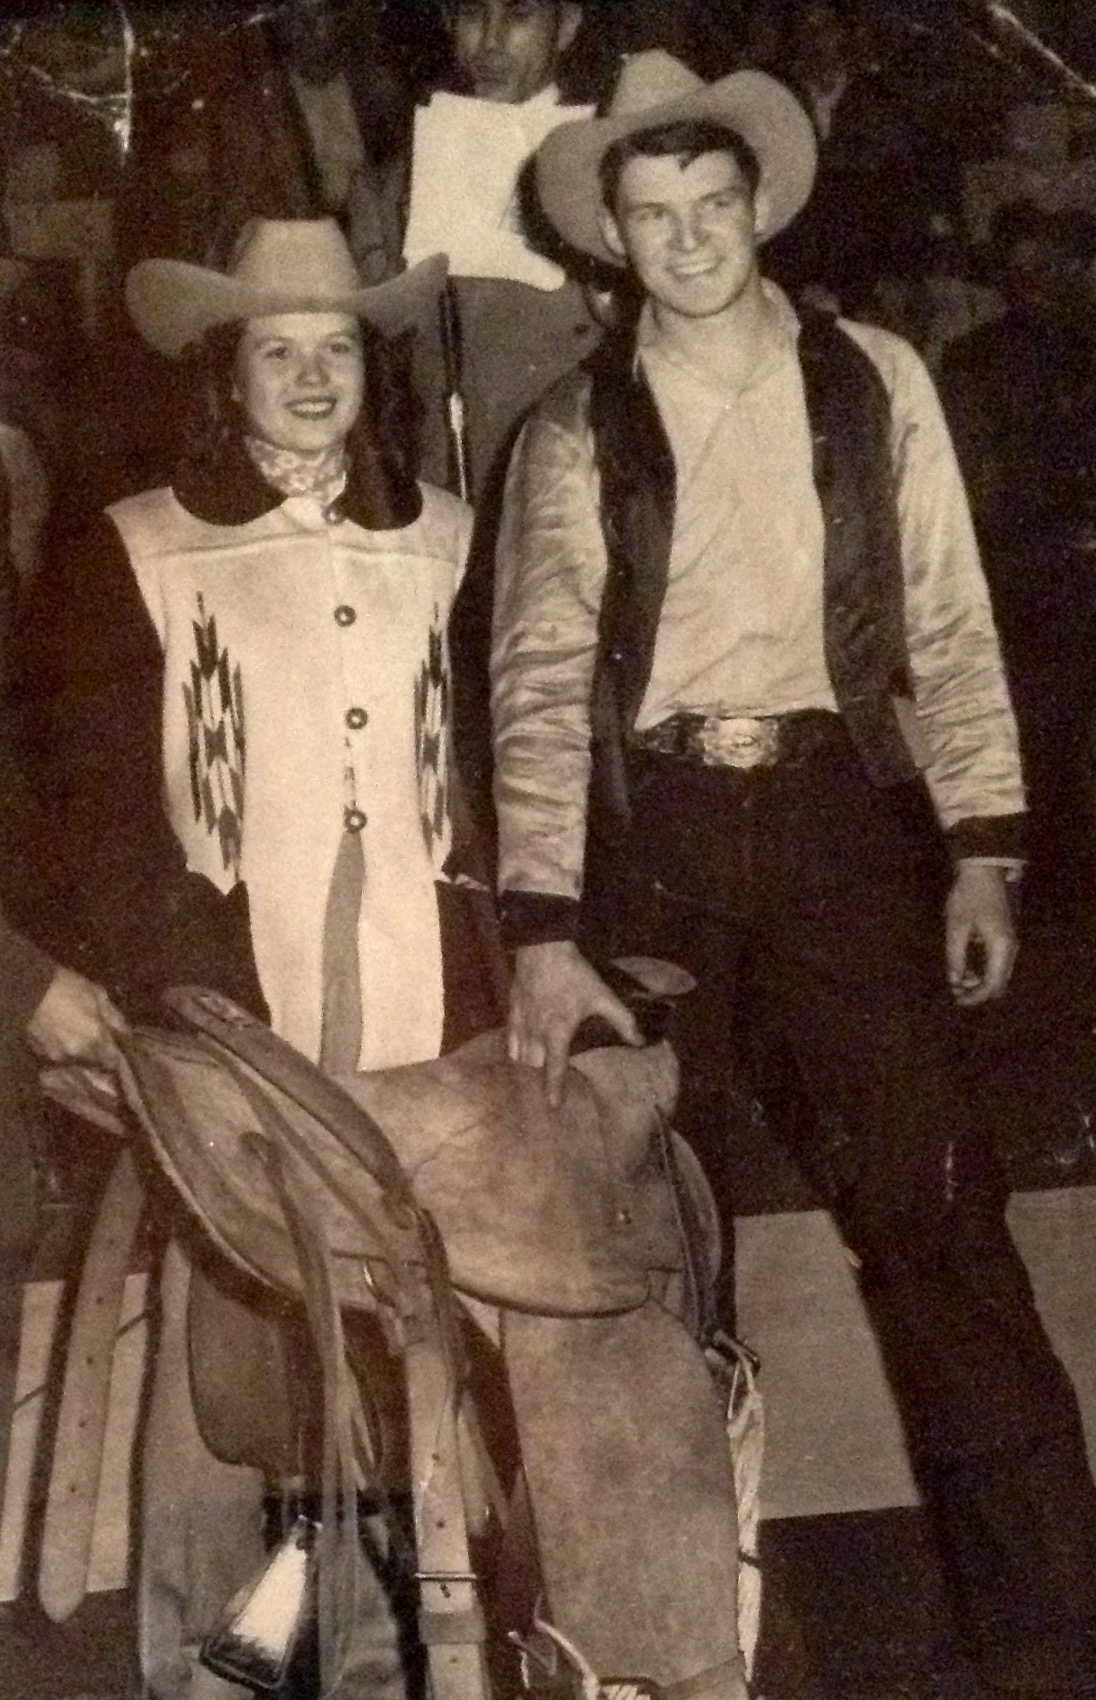 Jim Carrig, 1950 at the Cow Palace in San Francisco, receiving his saddle for first place in Bareback.